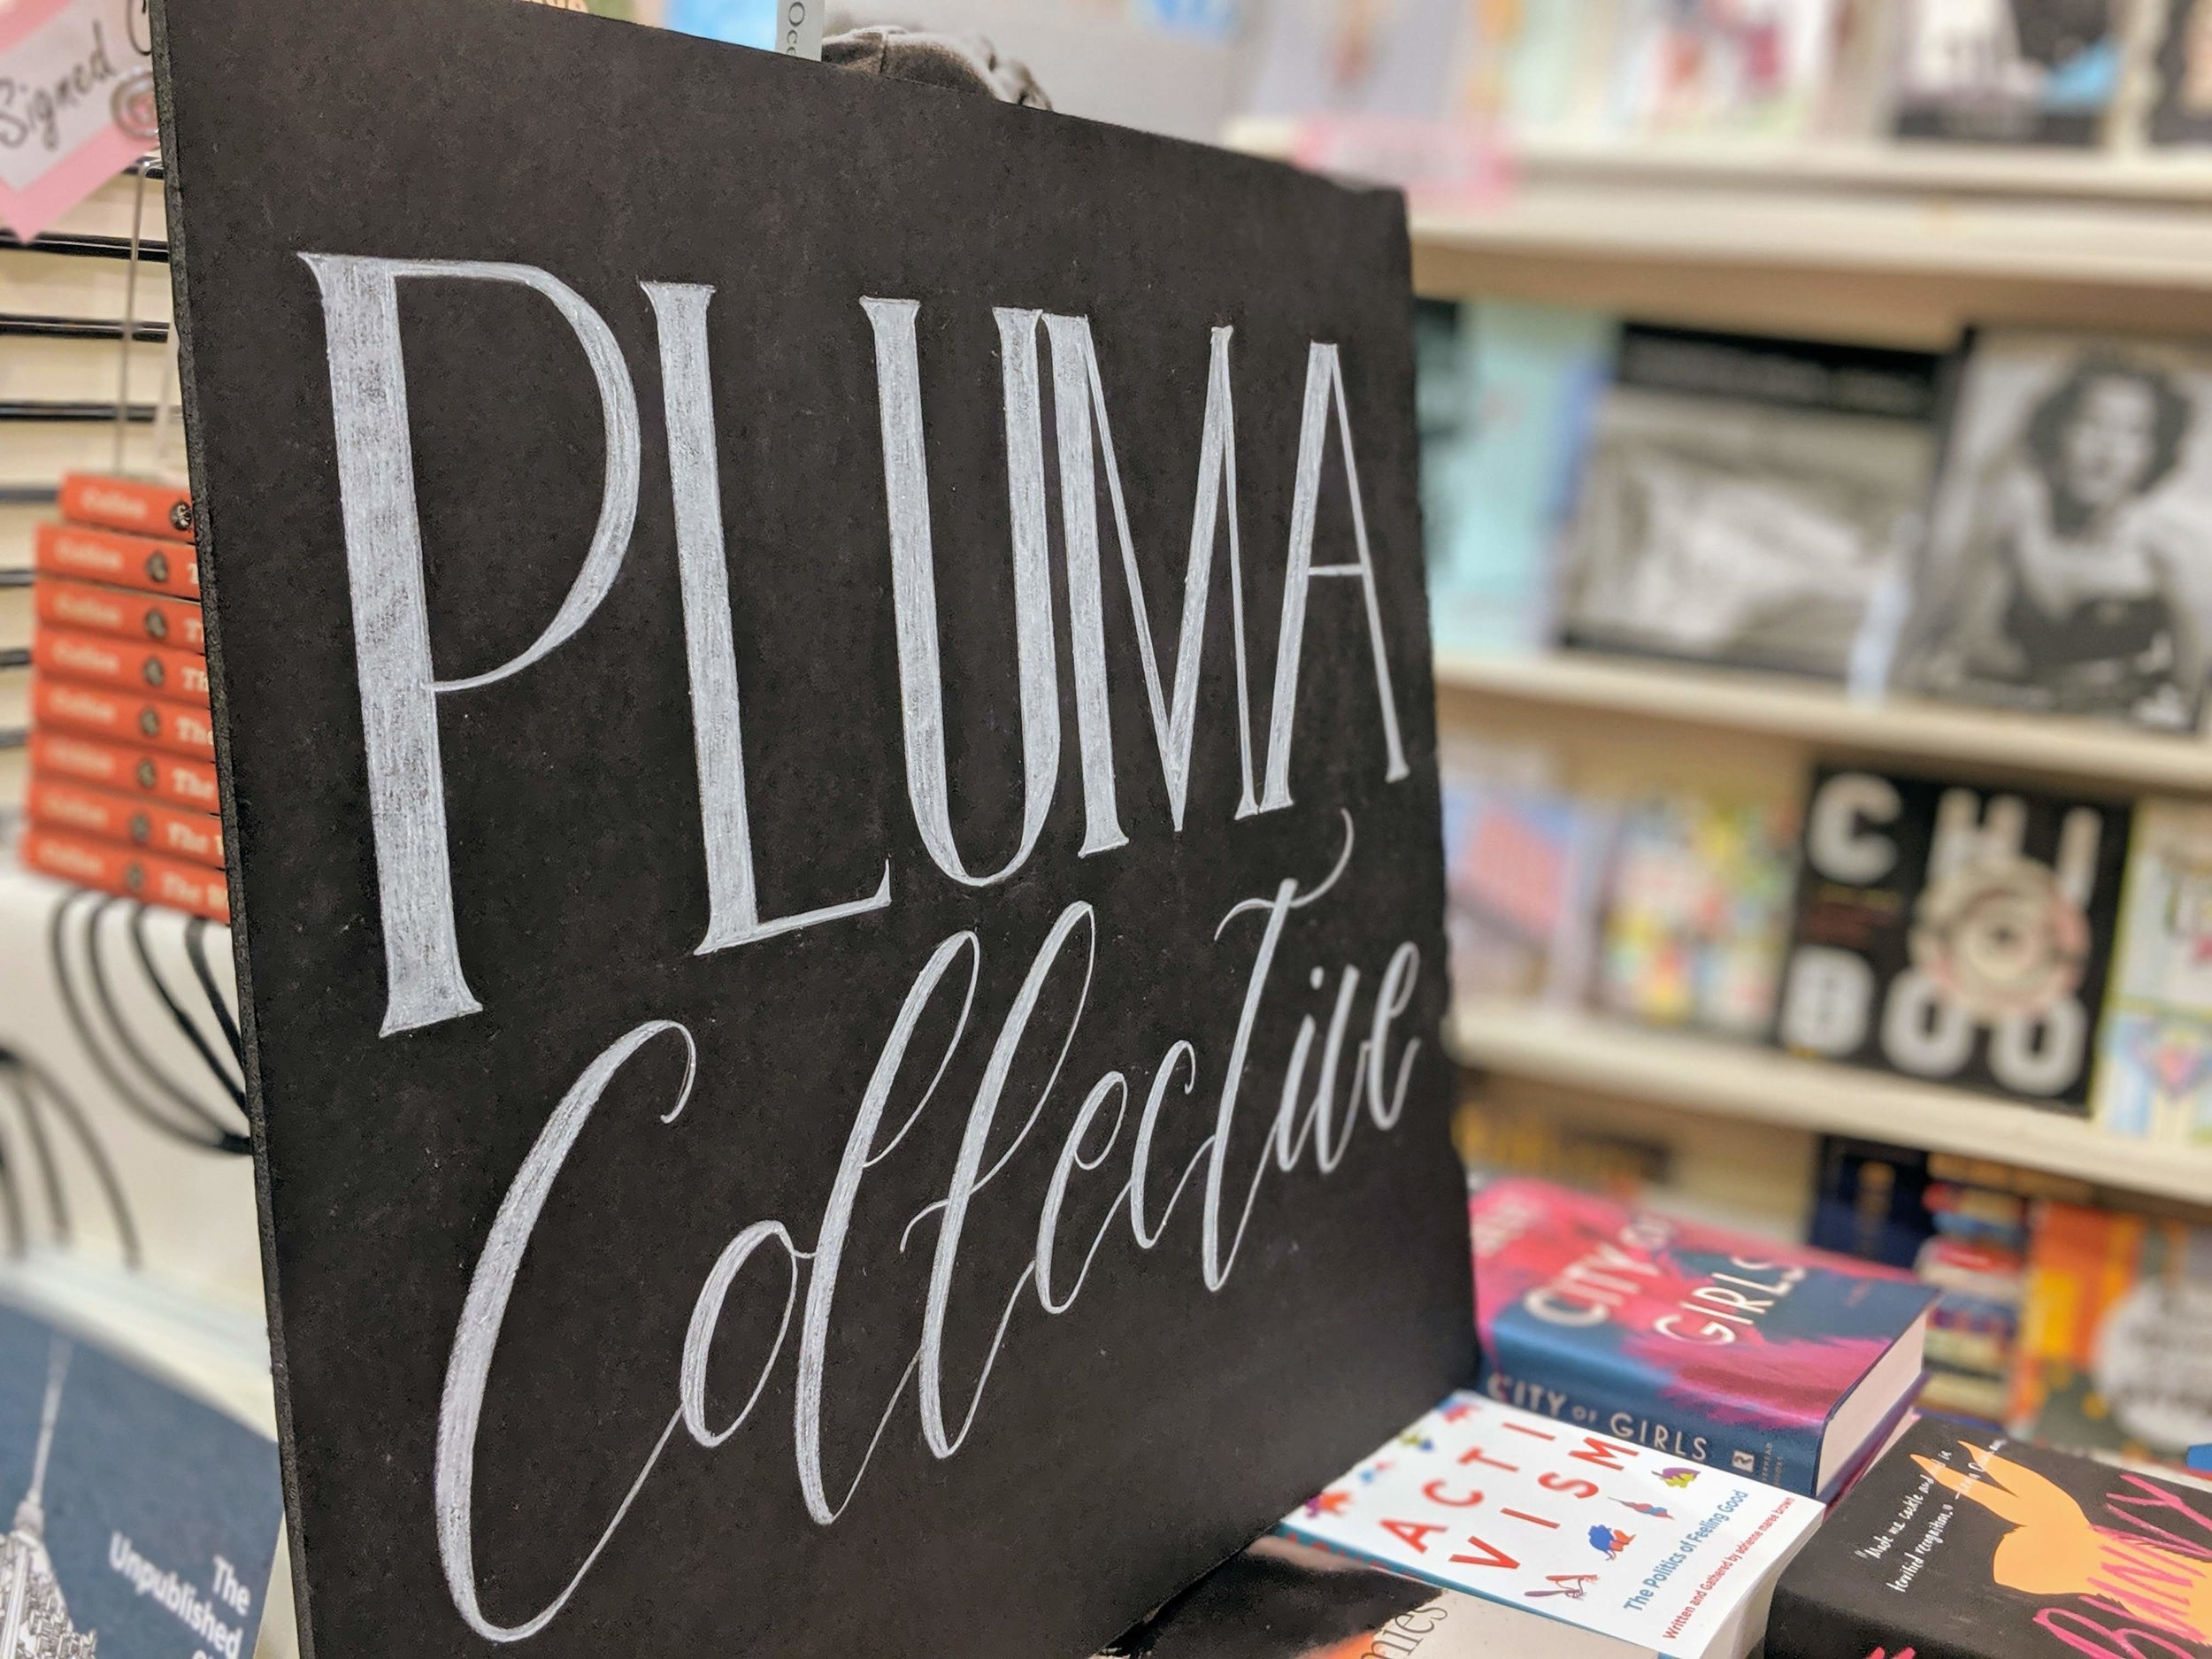 Pluma is a collective of Filipino writers who are dedicated to contributing to Canadian literature. Signage by  Pinya Letters.  Photo by Jovie Galit.